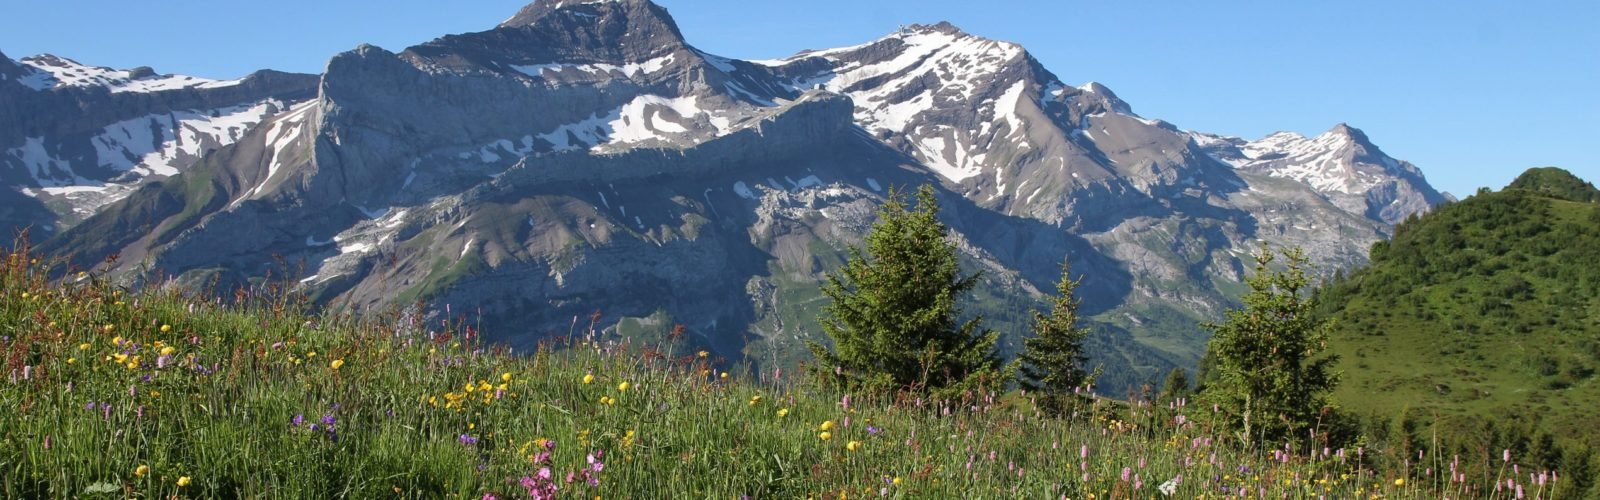 gstaad-mountain-and-flowers